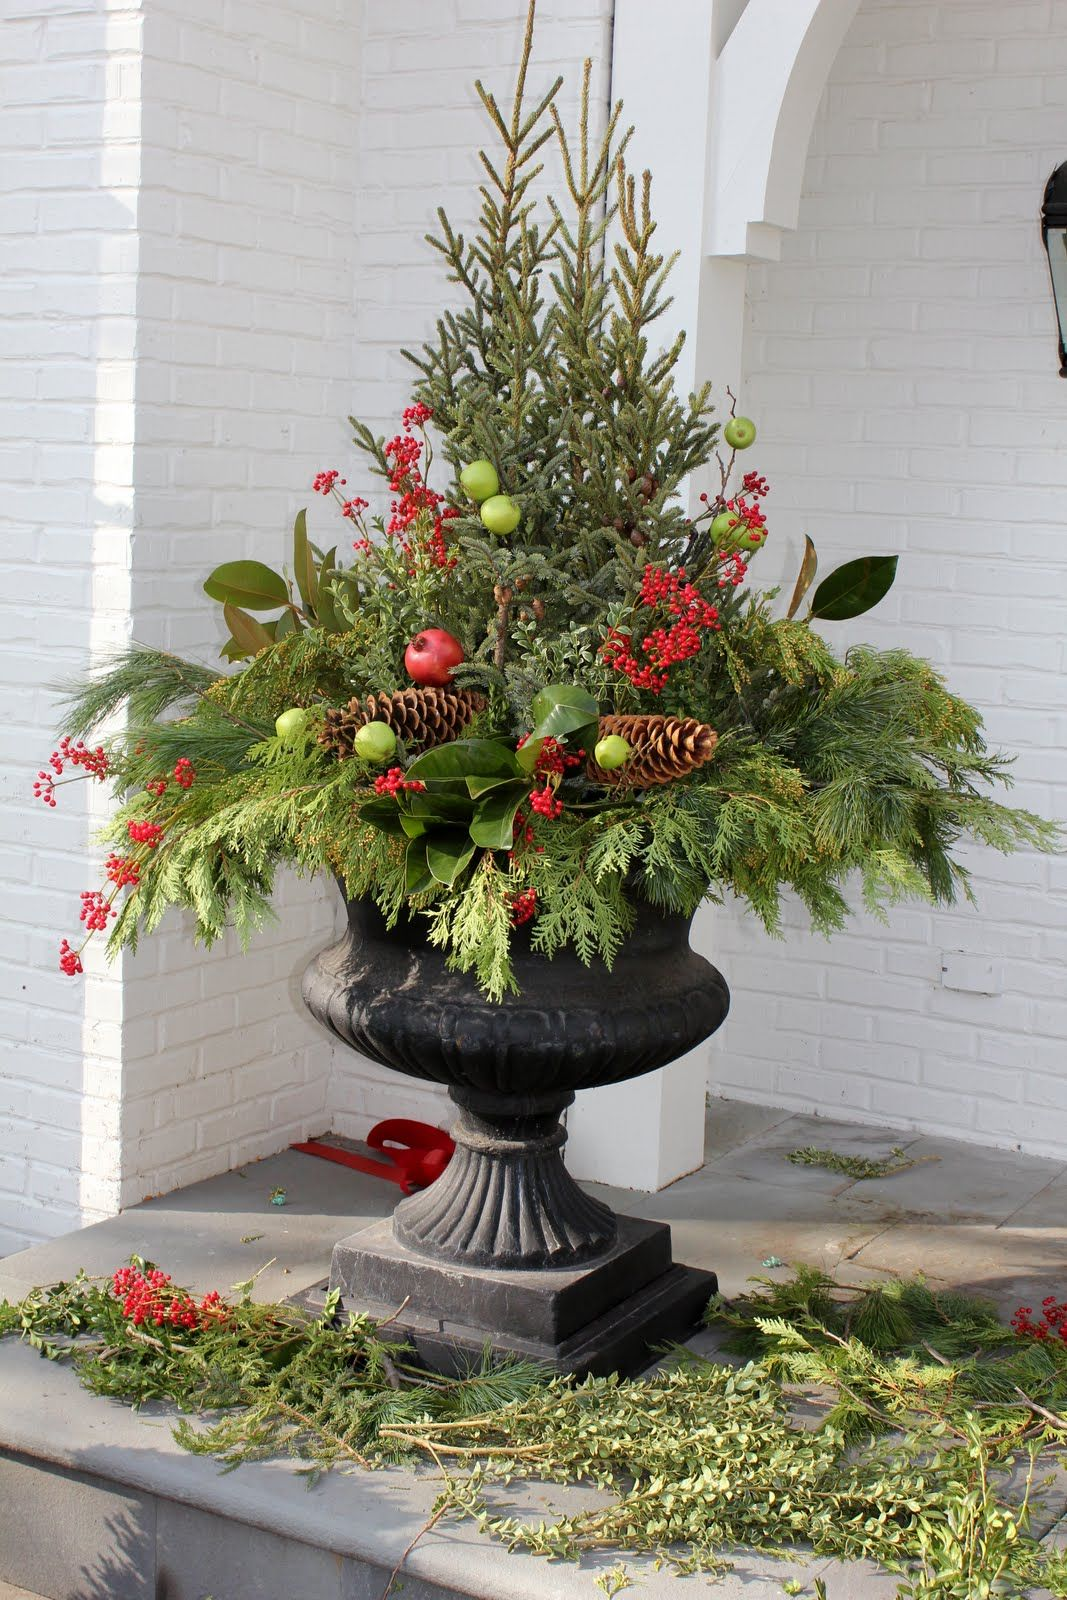 Photos of christmas urns Fashion-Schools. org - Rankings and Profiles of Fashion